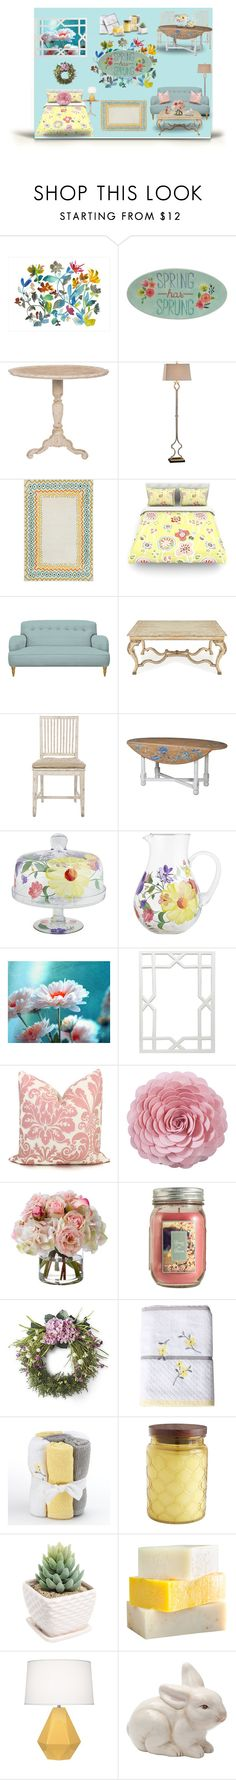 """""""Spring"""" by donna-france-davis ❤ liked on Polyvore featuring interior, interiors, interior design, home, home decor, interior decorating, Dot & Bo, Aidan Gray, Uttermost and John-Richard"""